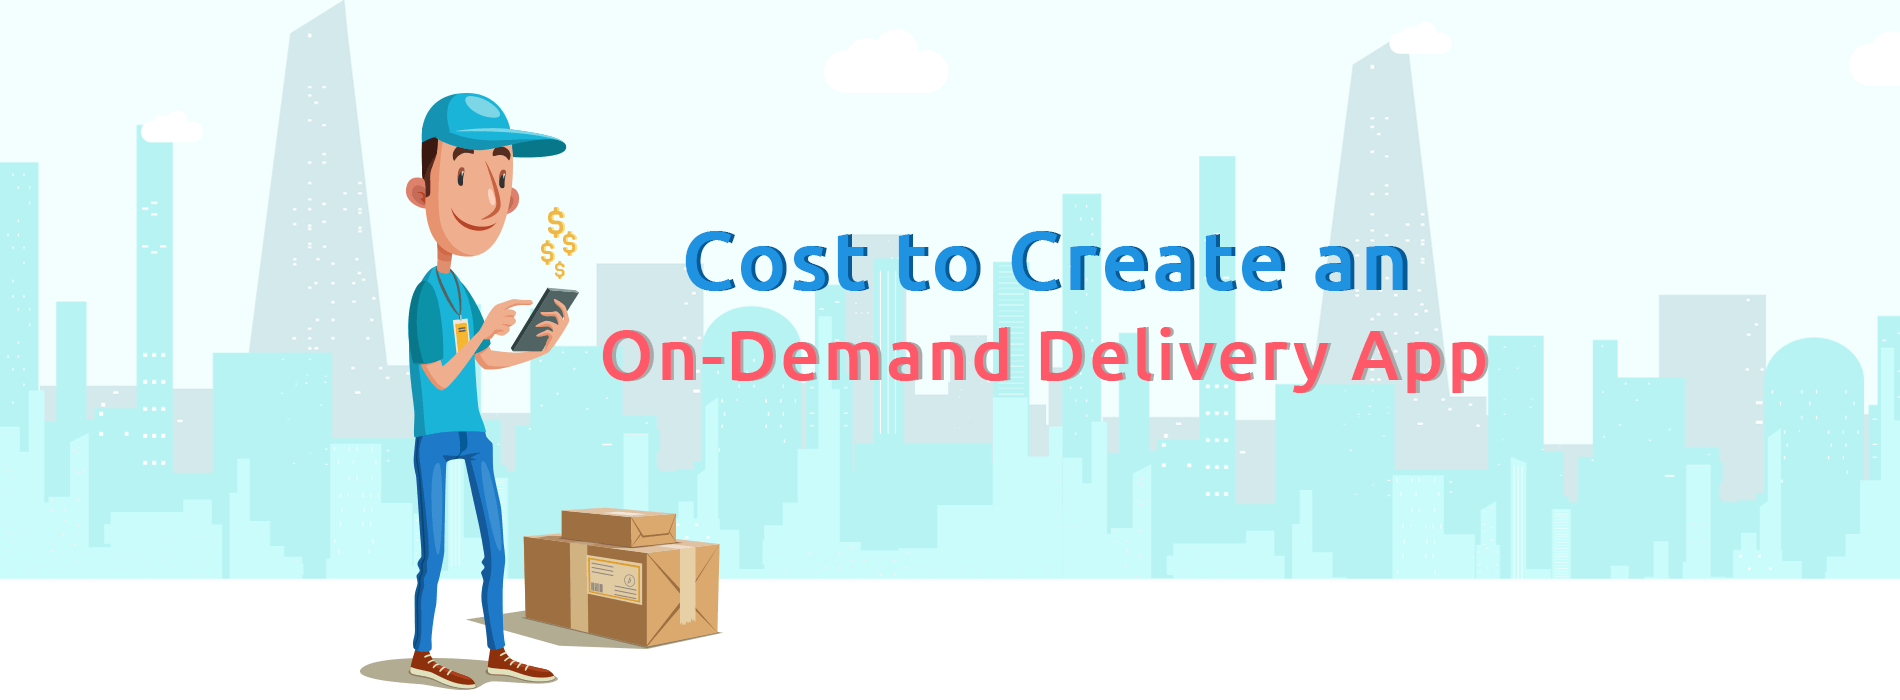 The Total Cost to Create an On-Demand Delivery App